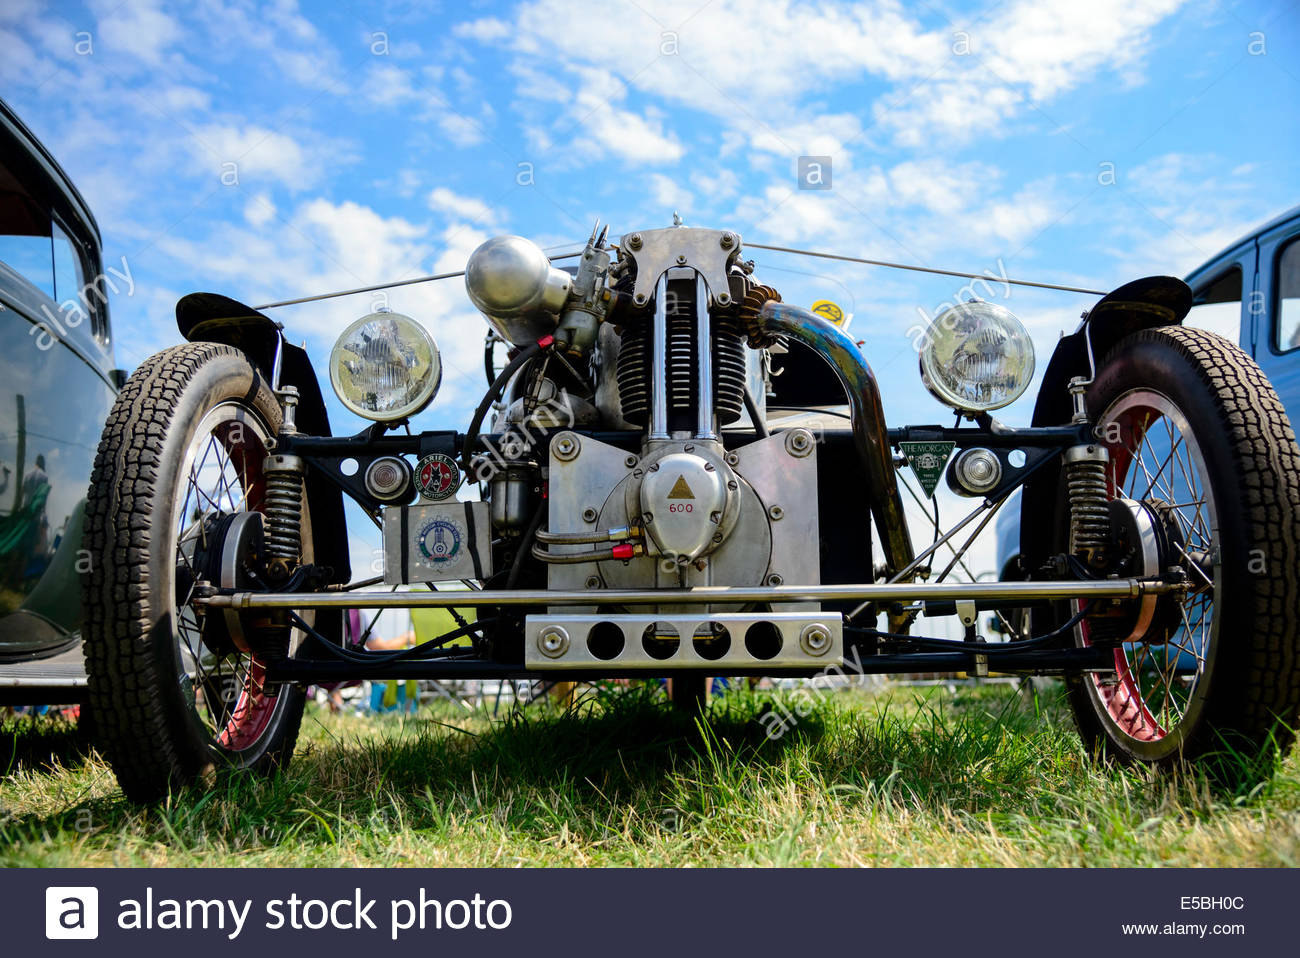 Morgan Aeriel Aero three wheeler car at Welland Rally & Show, Worcestershire, UK. Stock Photo